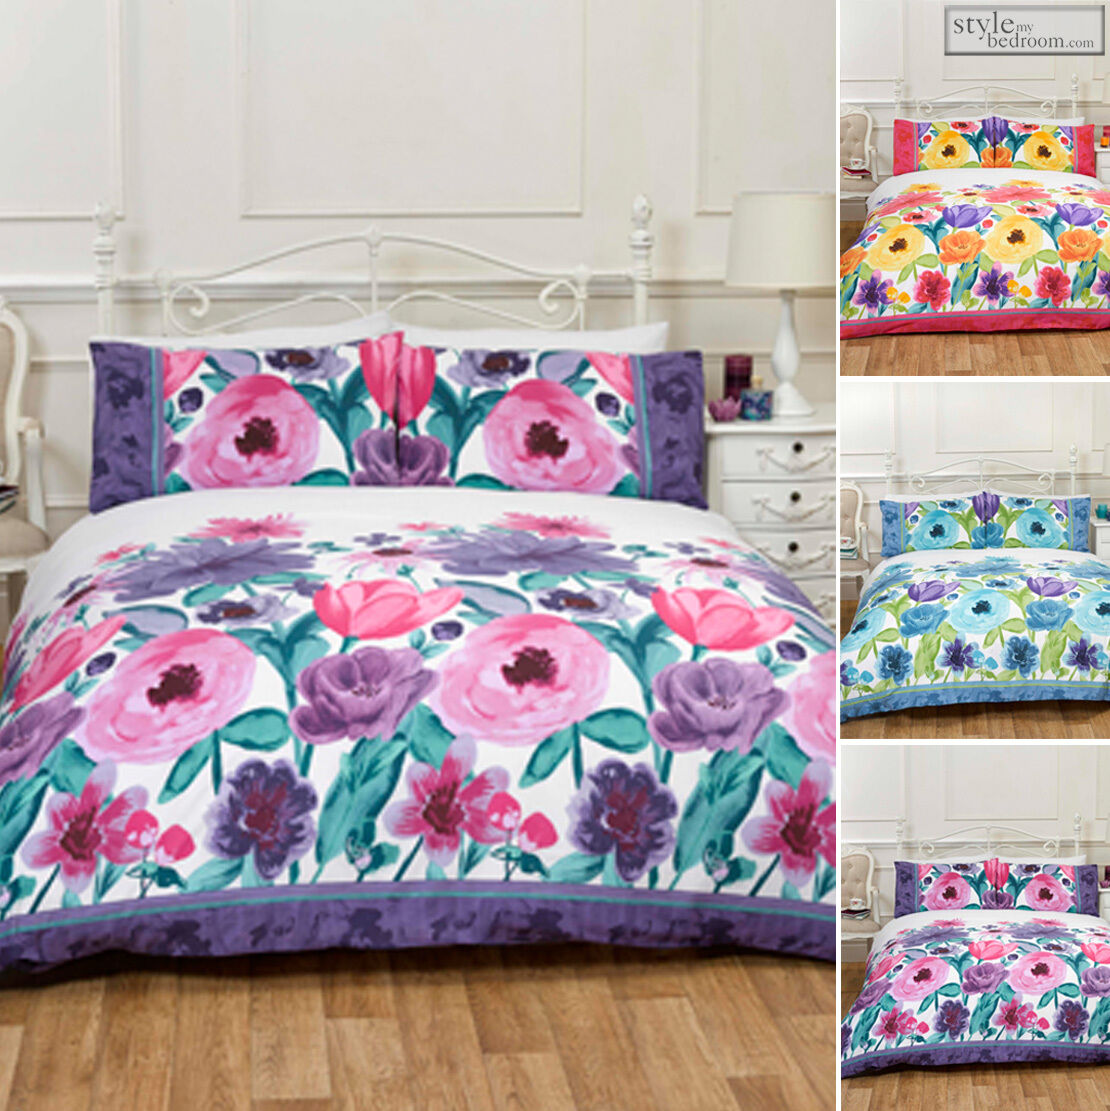 Watercolour floral isabella duvet quilt cover bedding set for Style my bedroom